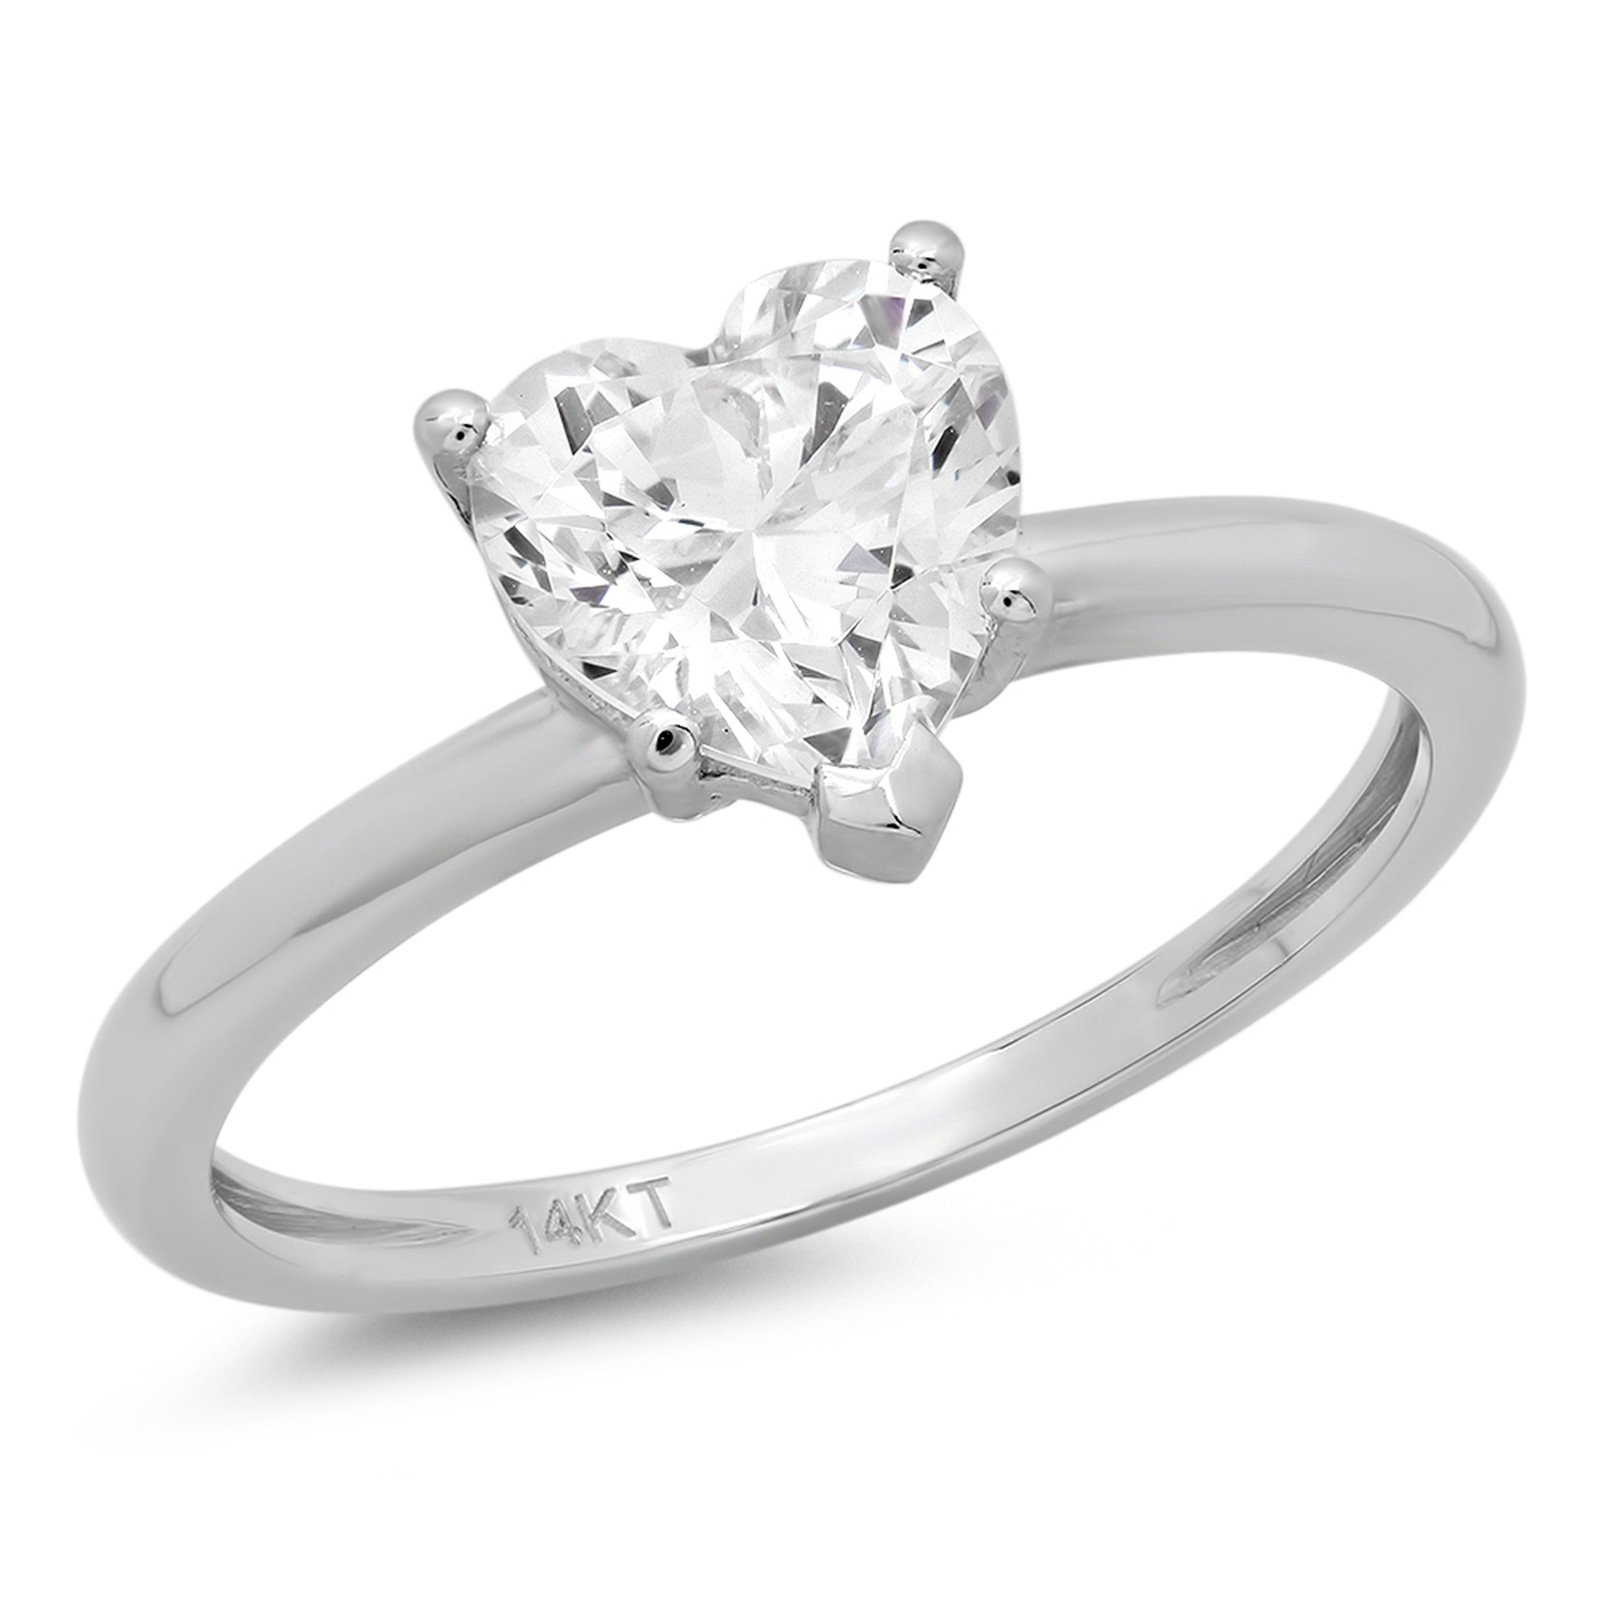 Clara Pucci Brilliant Heart Cut Solitaire Engagement Wedding Promise Ring in Solid 14k White Gold, 1.85CT, Size 9